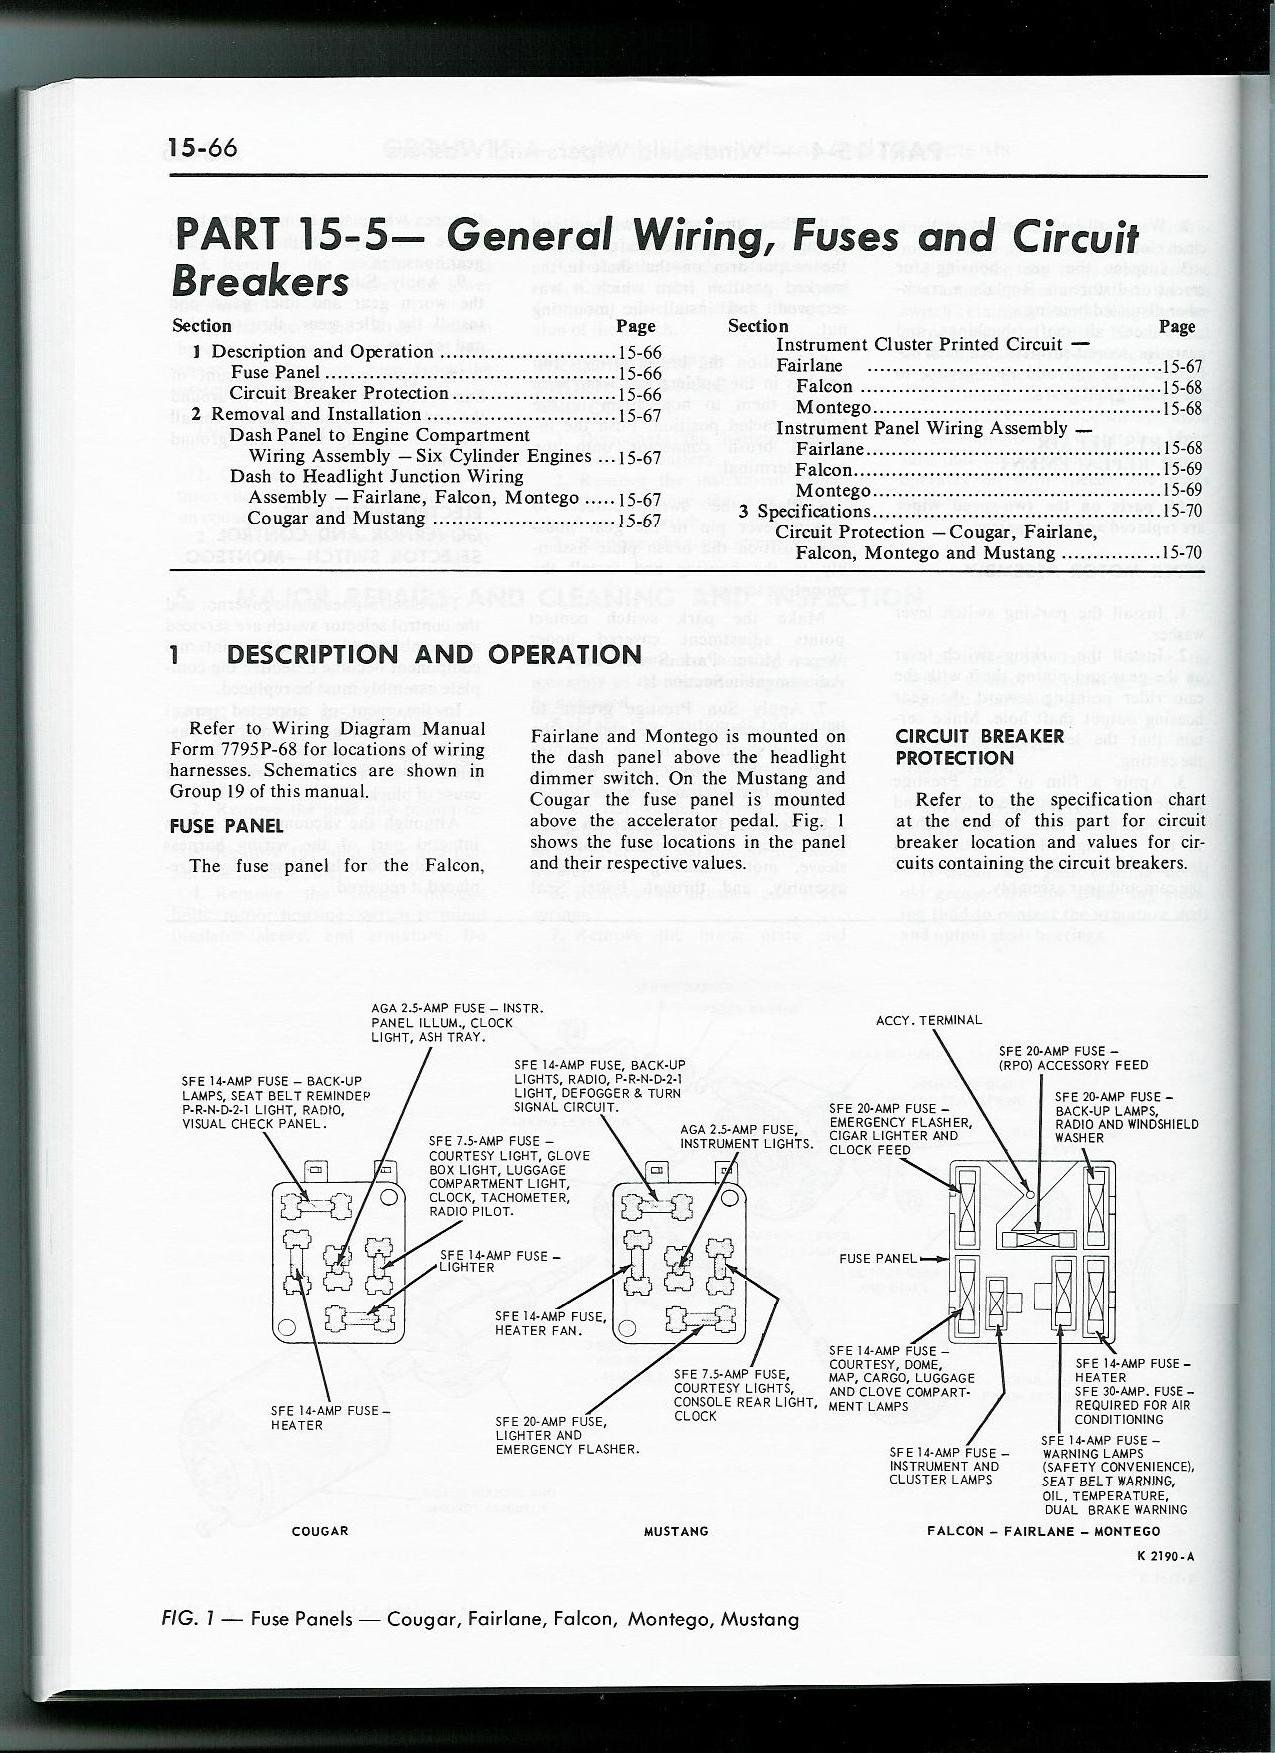 1966 ford mustang fuse box wiring diagram work  65 ford mustang fuse box #2